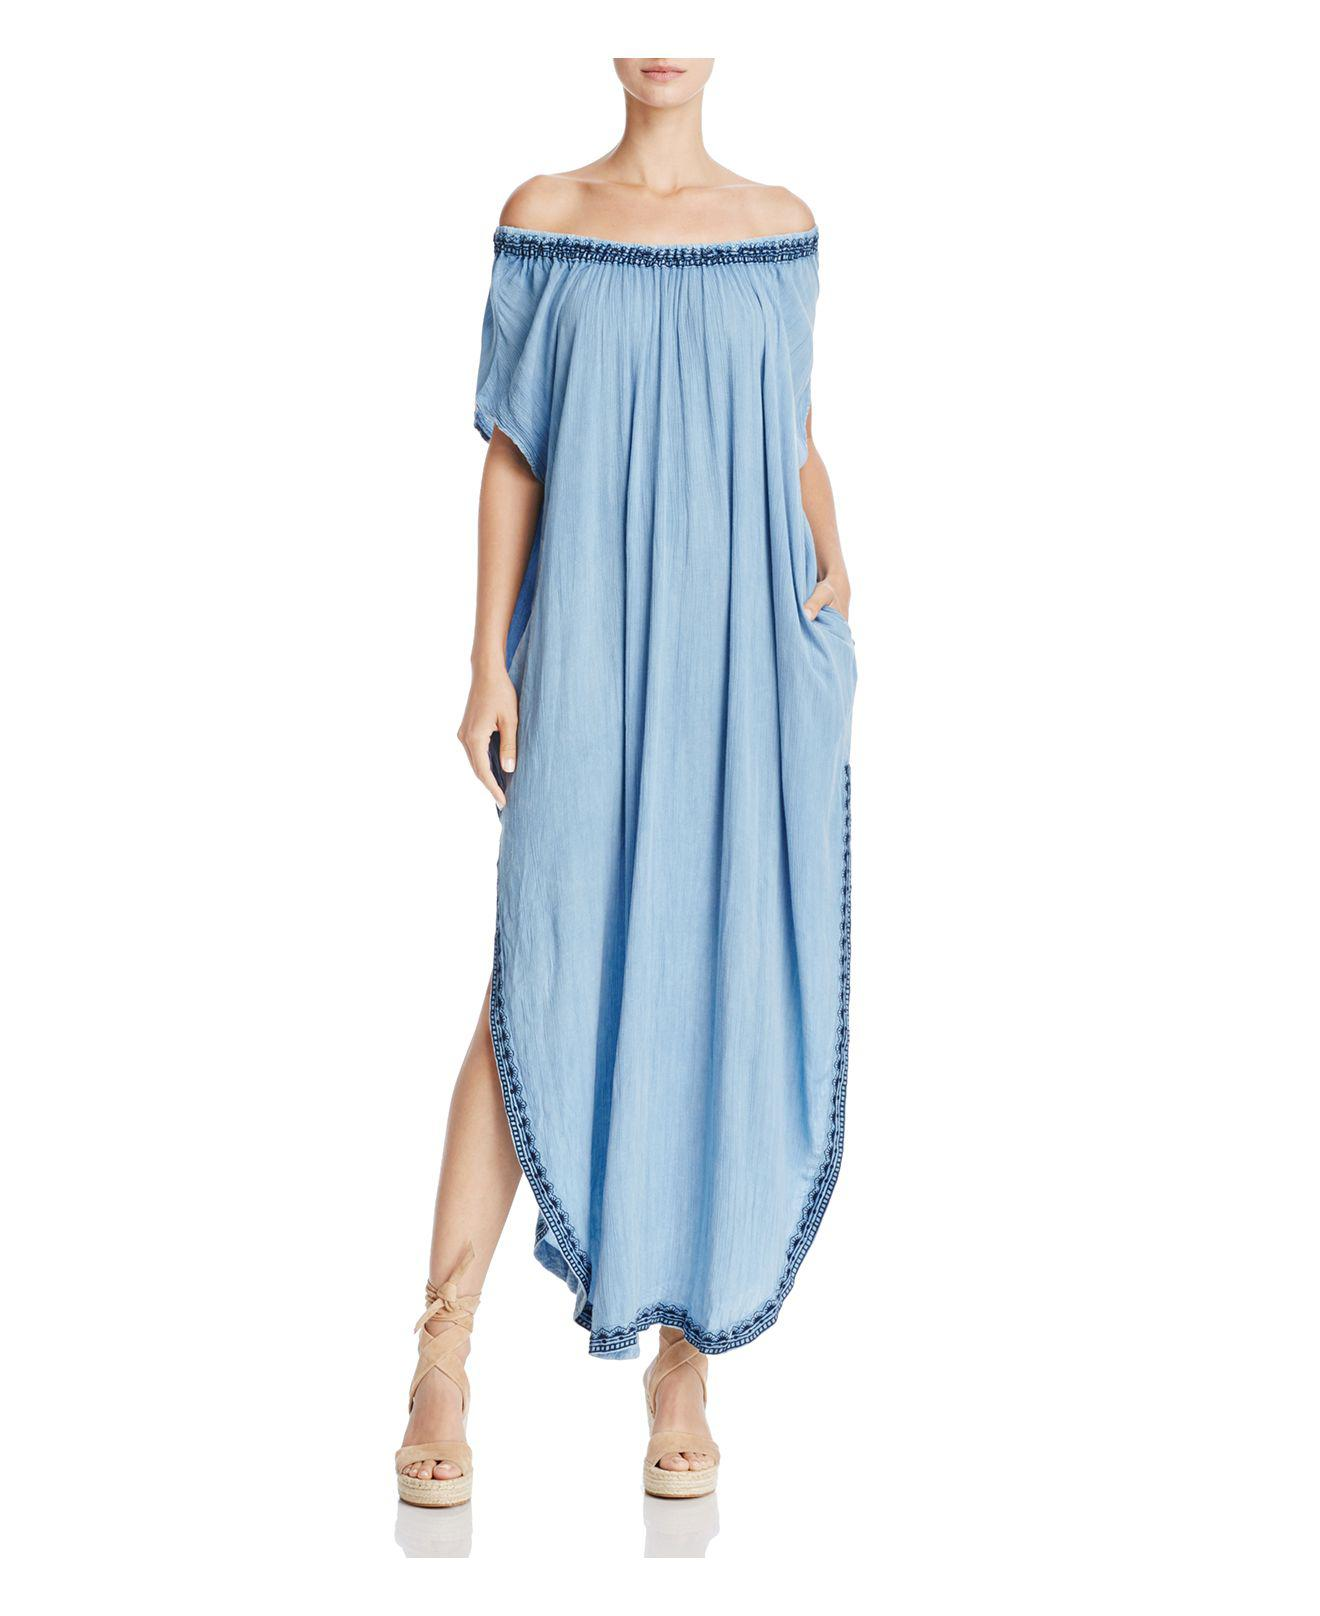 6c64e48970 Muche Et Muchette Off-the-shoulder Embroidered Maxi Dress in Blue - Lyst